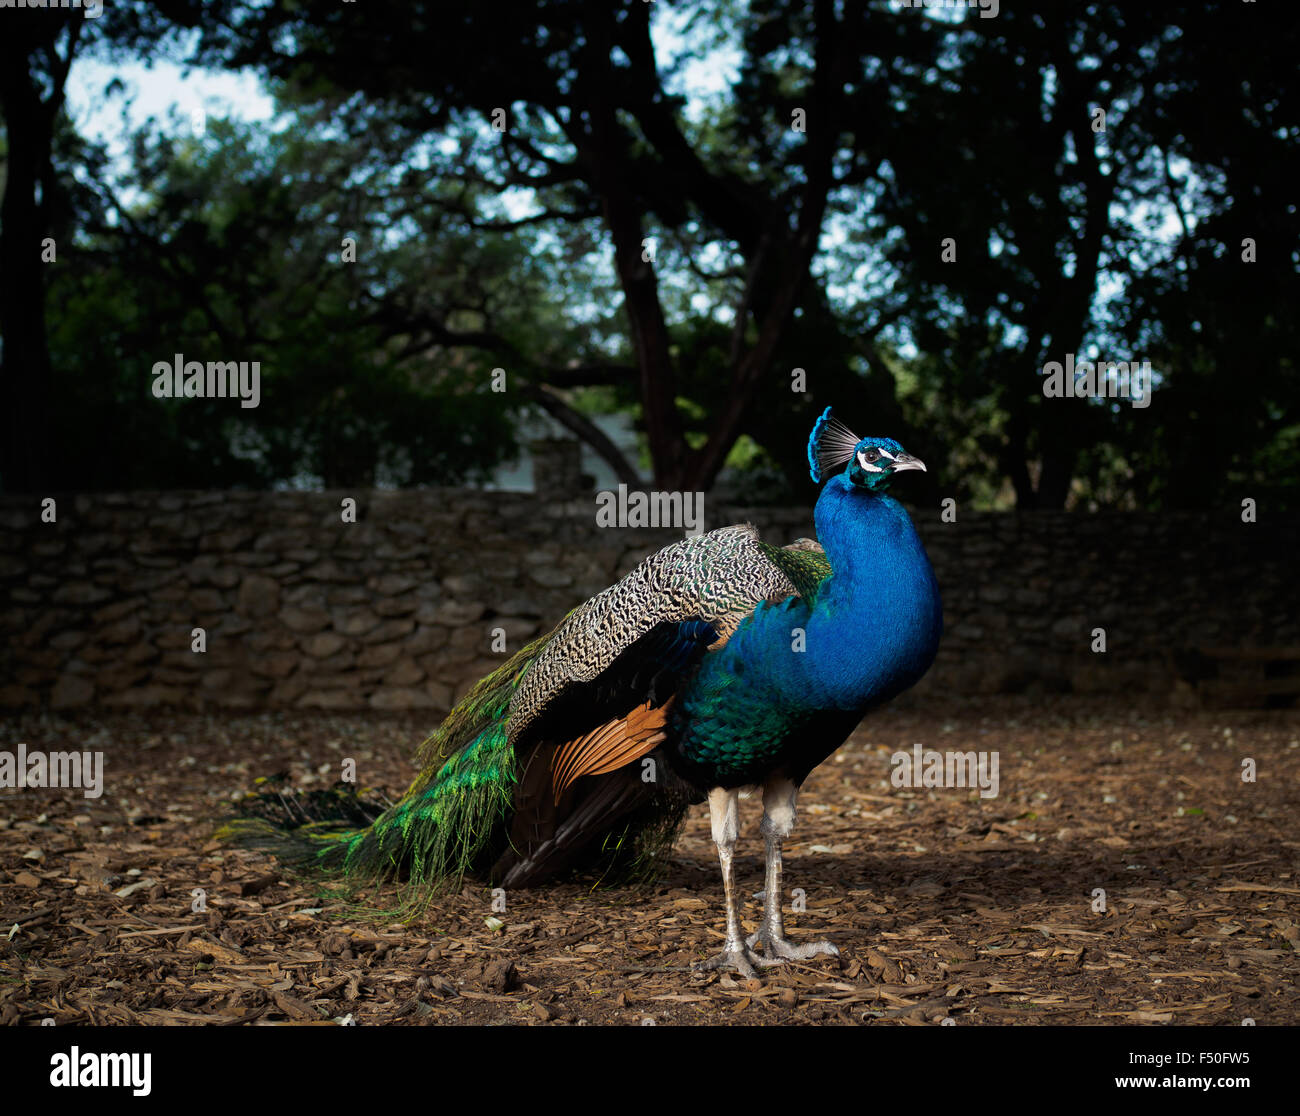 Peacock standing in the sun at Mayfield Park in Austin, Texas - Stock Image